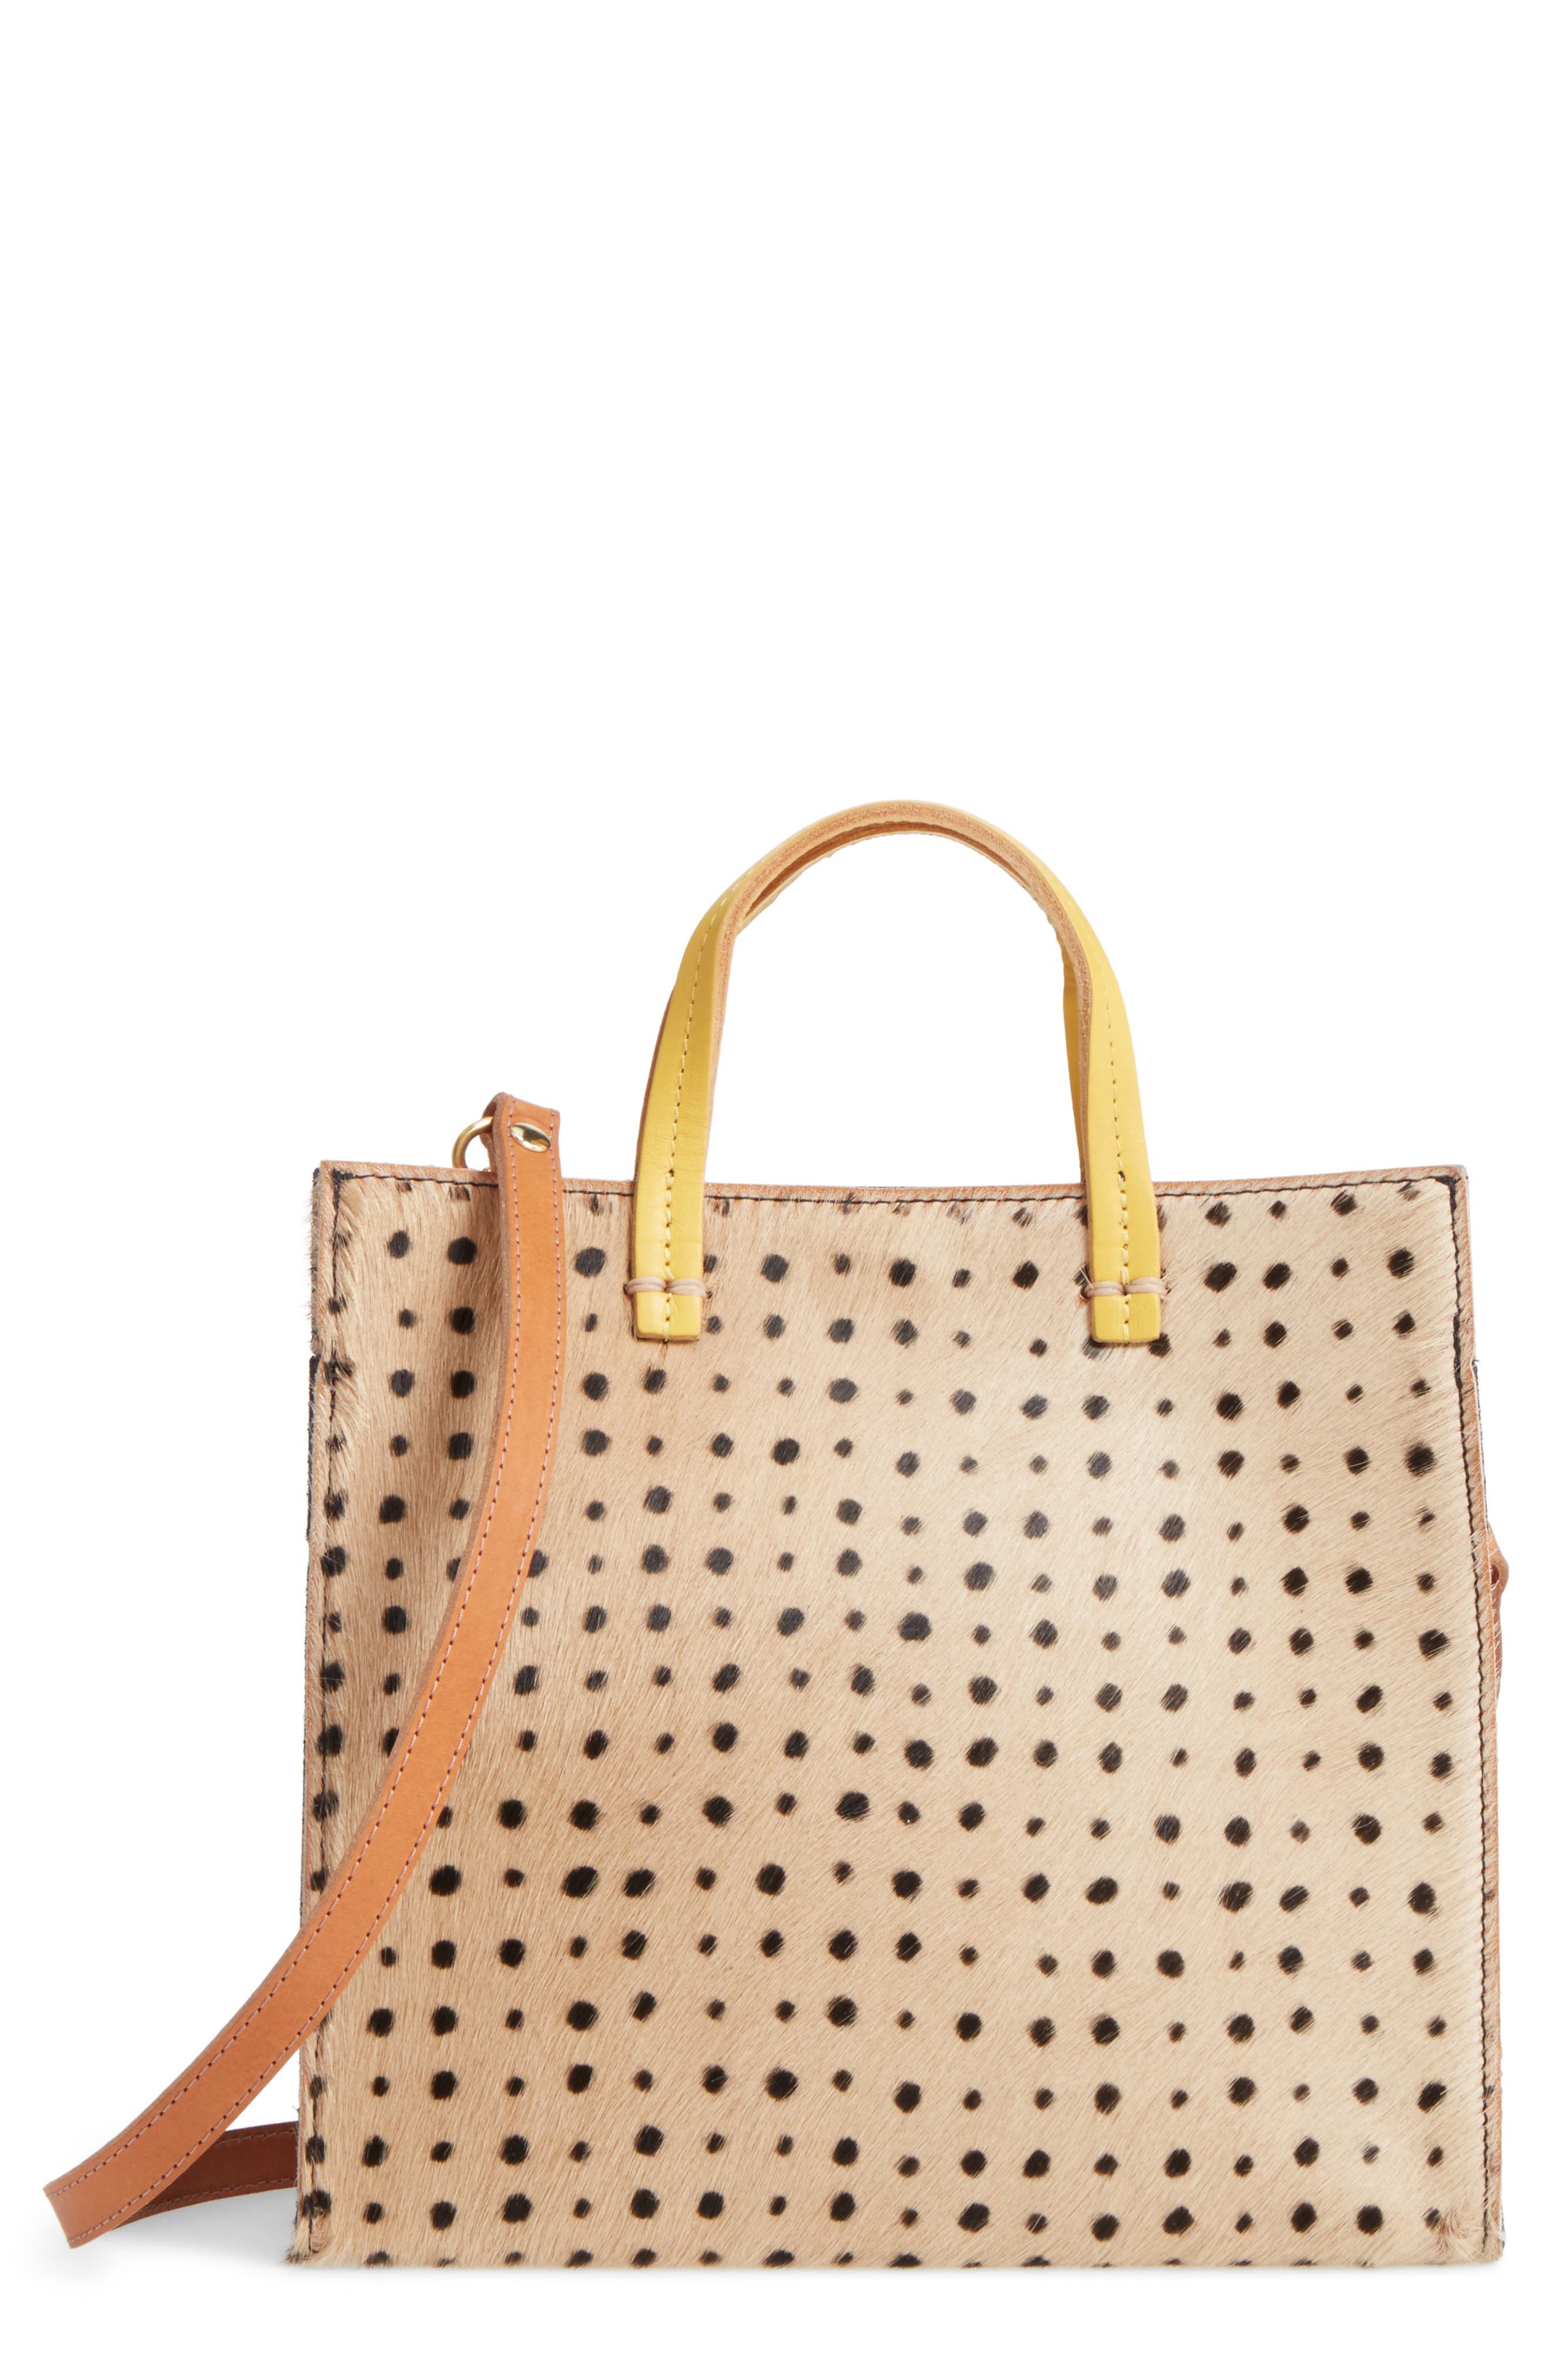 Clare V. Small Petit Simple Genuine Calf Hair Tote